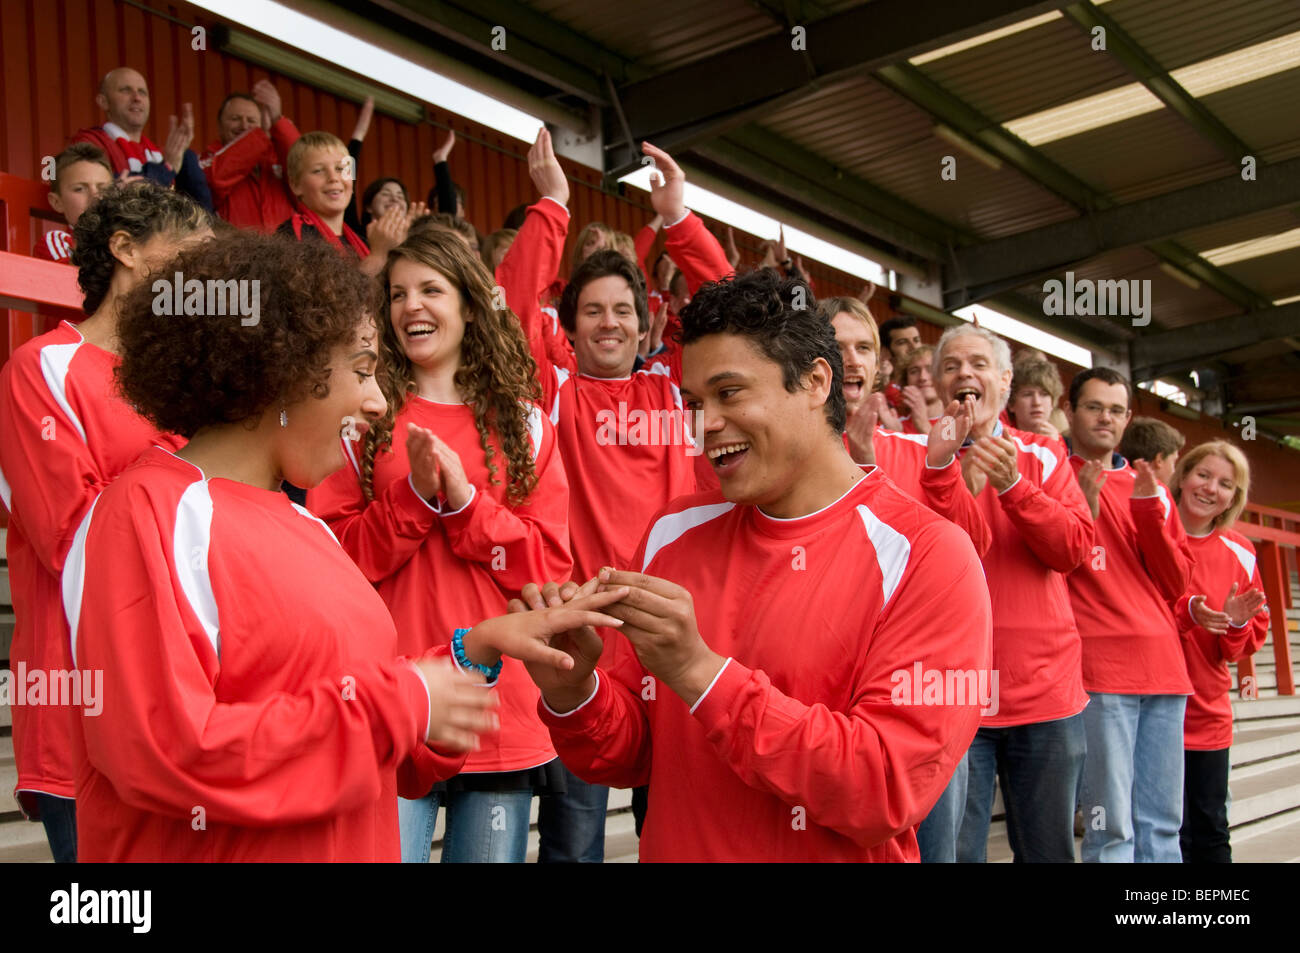 Marriage proposal at football match Stock Photo: 26314580